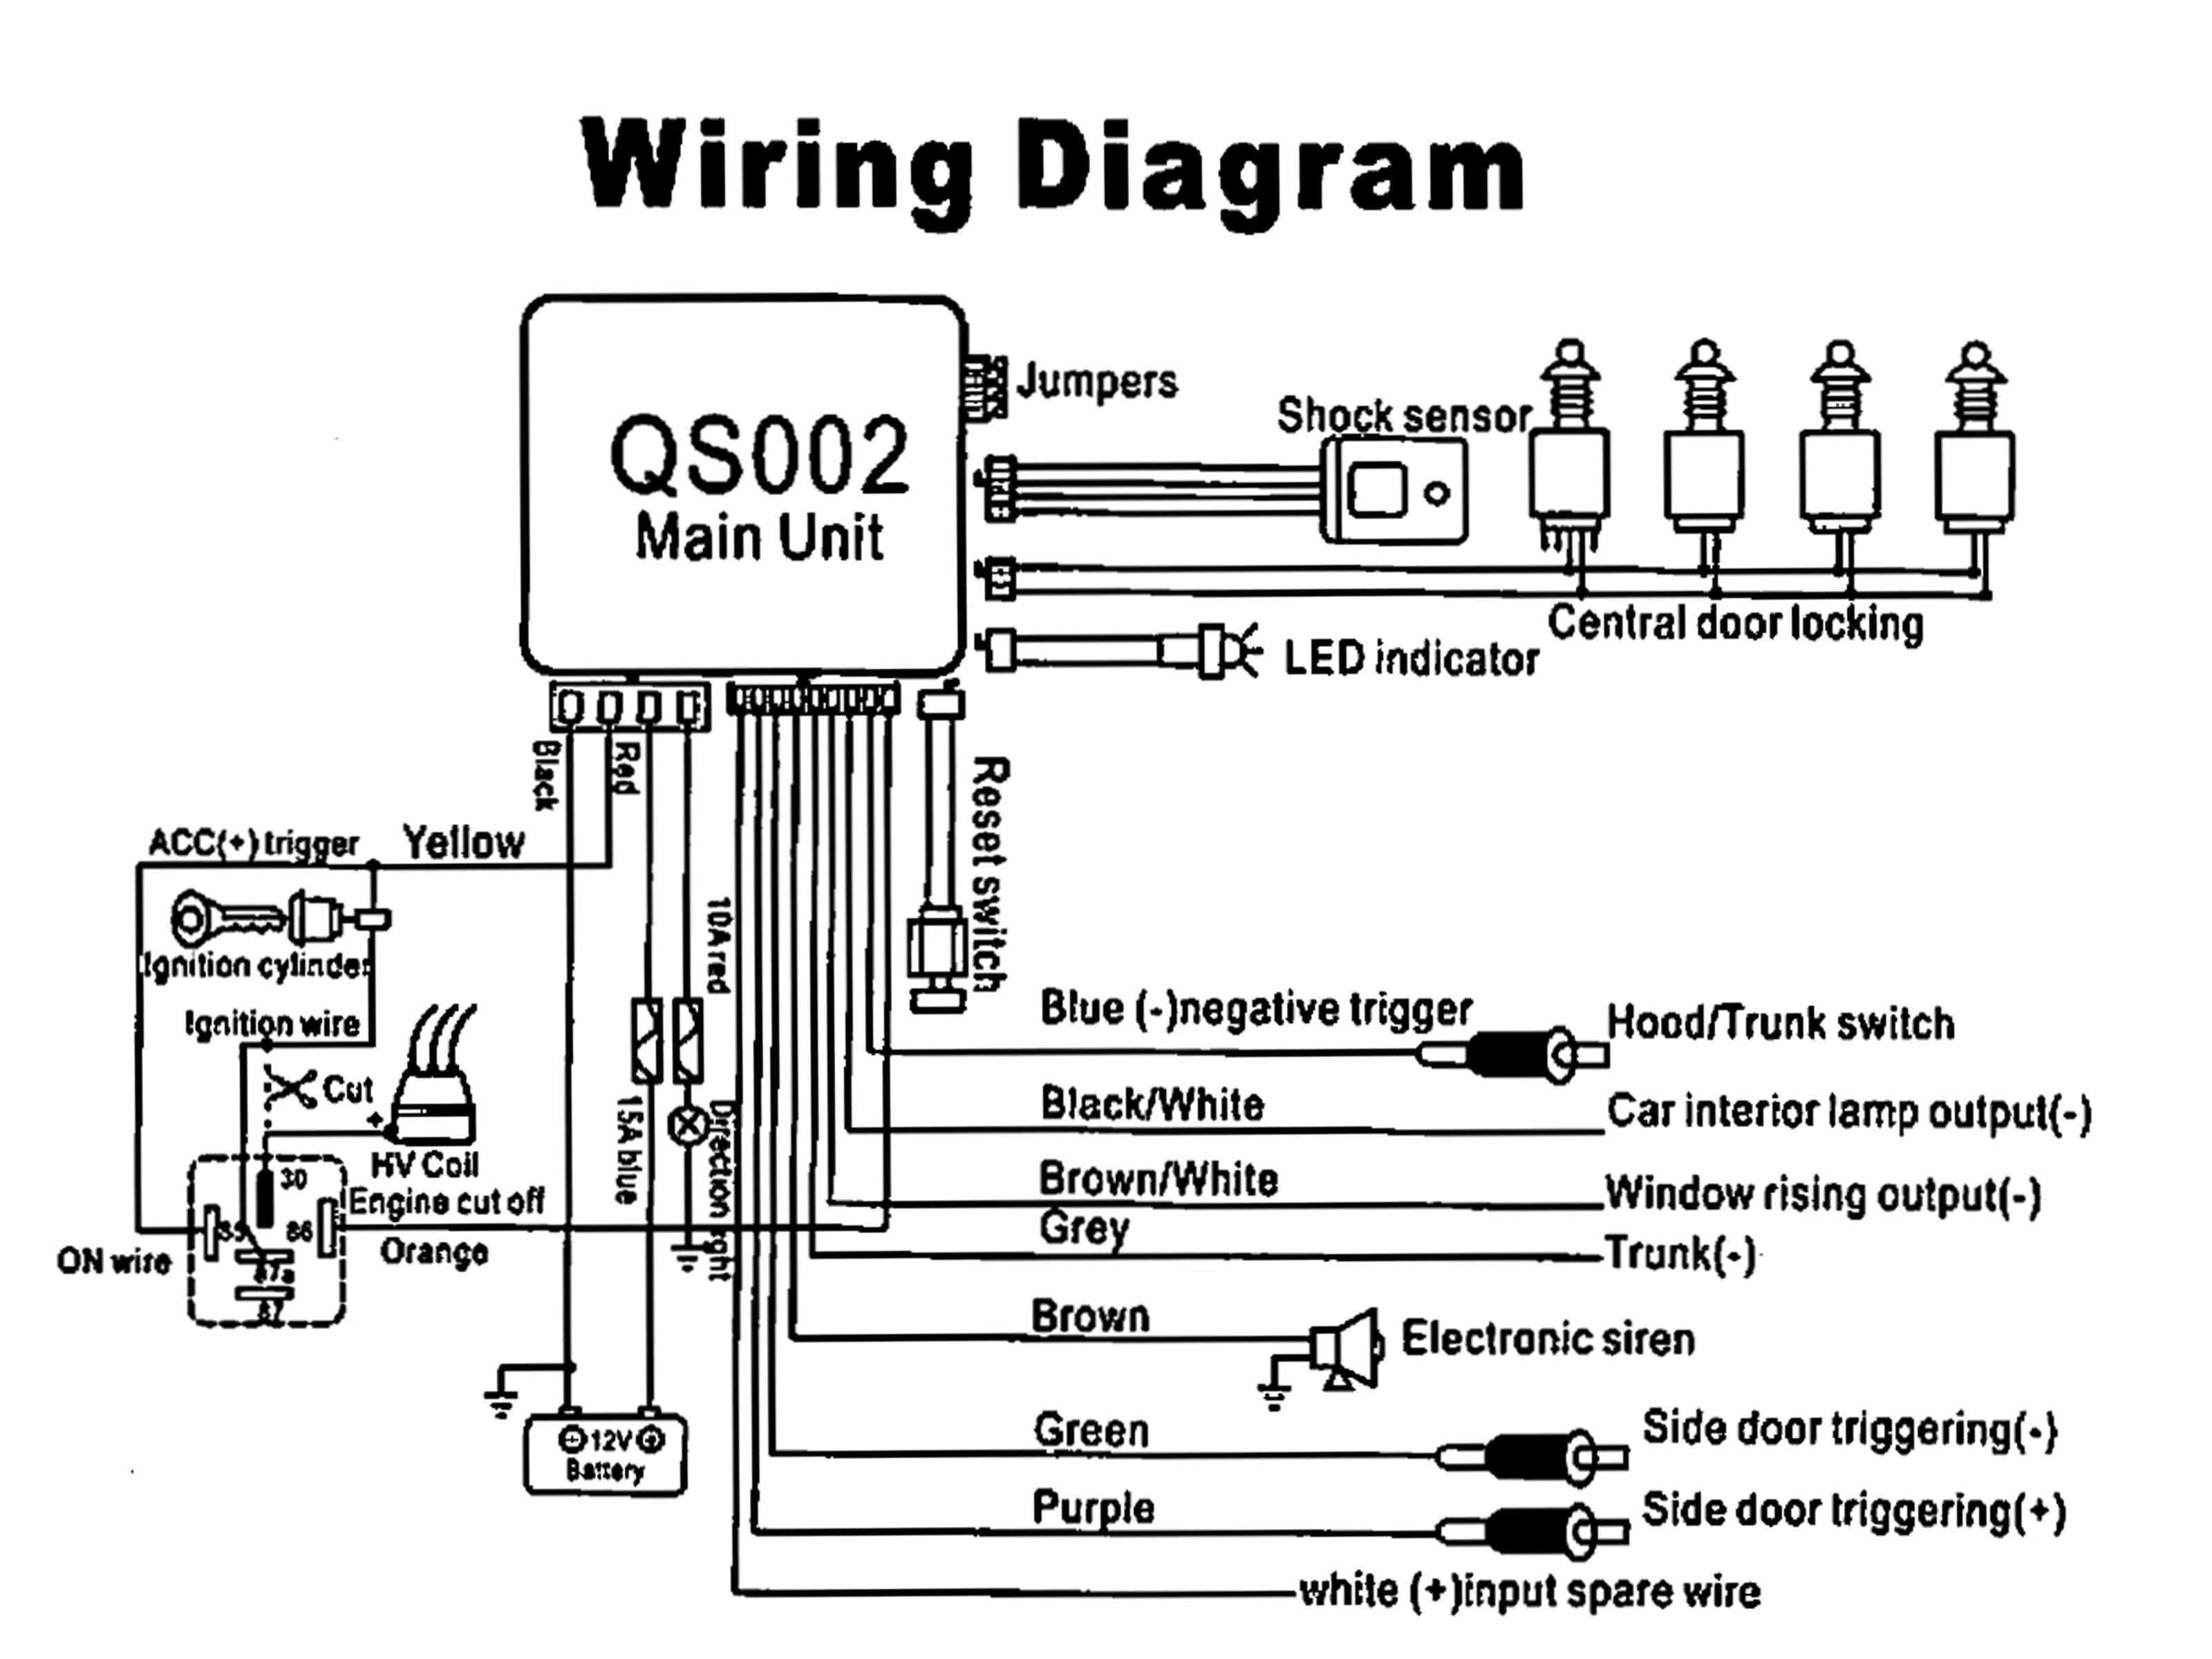 Clarion Xmd2 Wiring Diagram : 27 Wiring Diagram Images